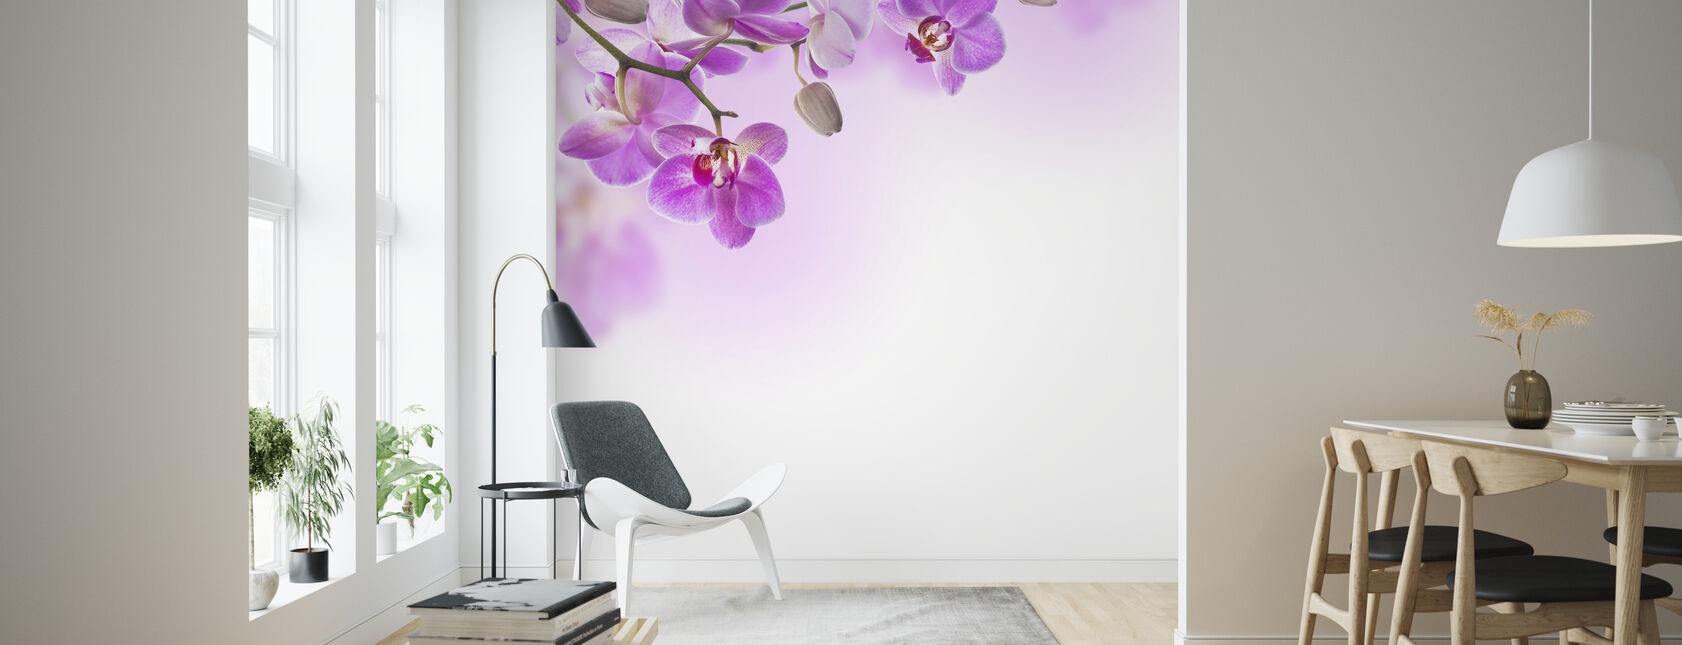 Tropical Fuchsia Orchids - Wallpaper - Living Room